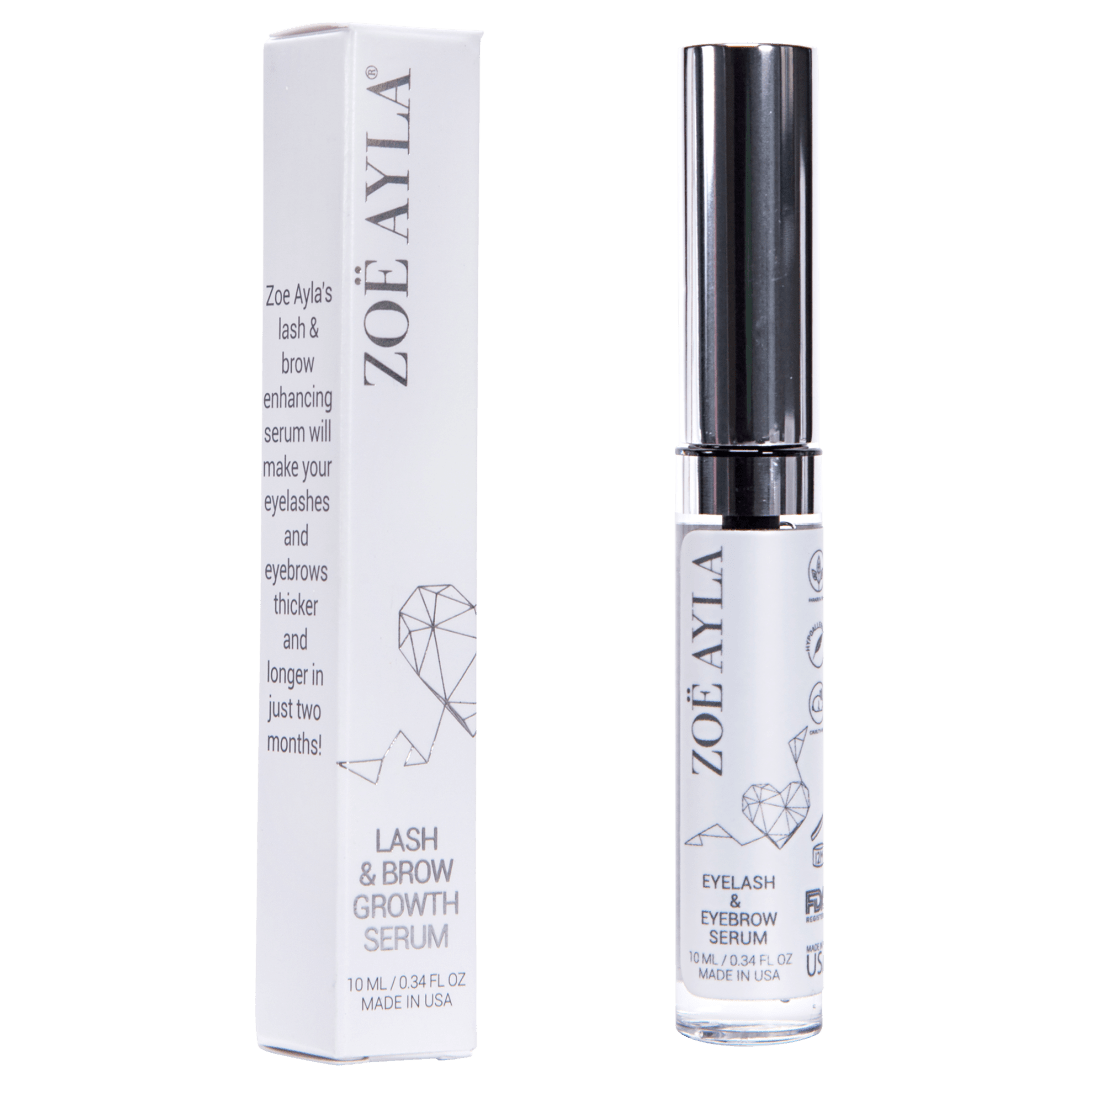 96c17d3b4e8 ... Zoe Ayla Premium Eyelash and Brow Growth Serum. Sold out